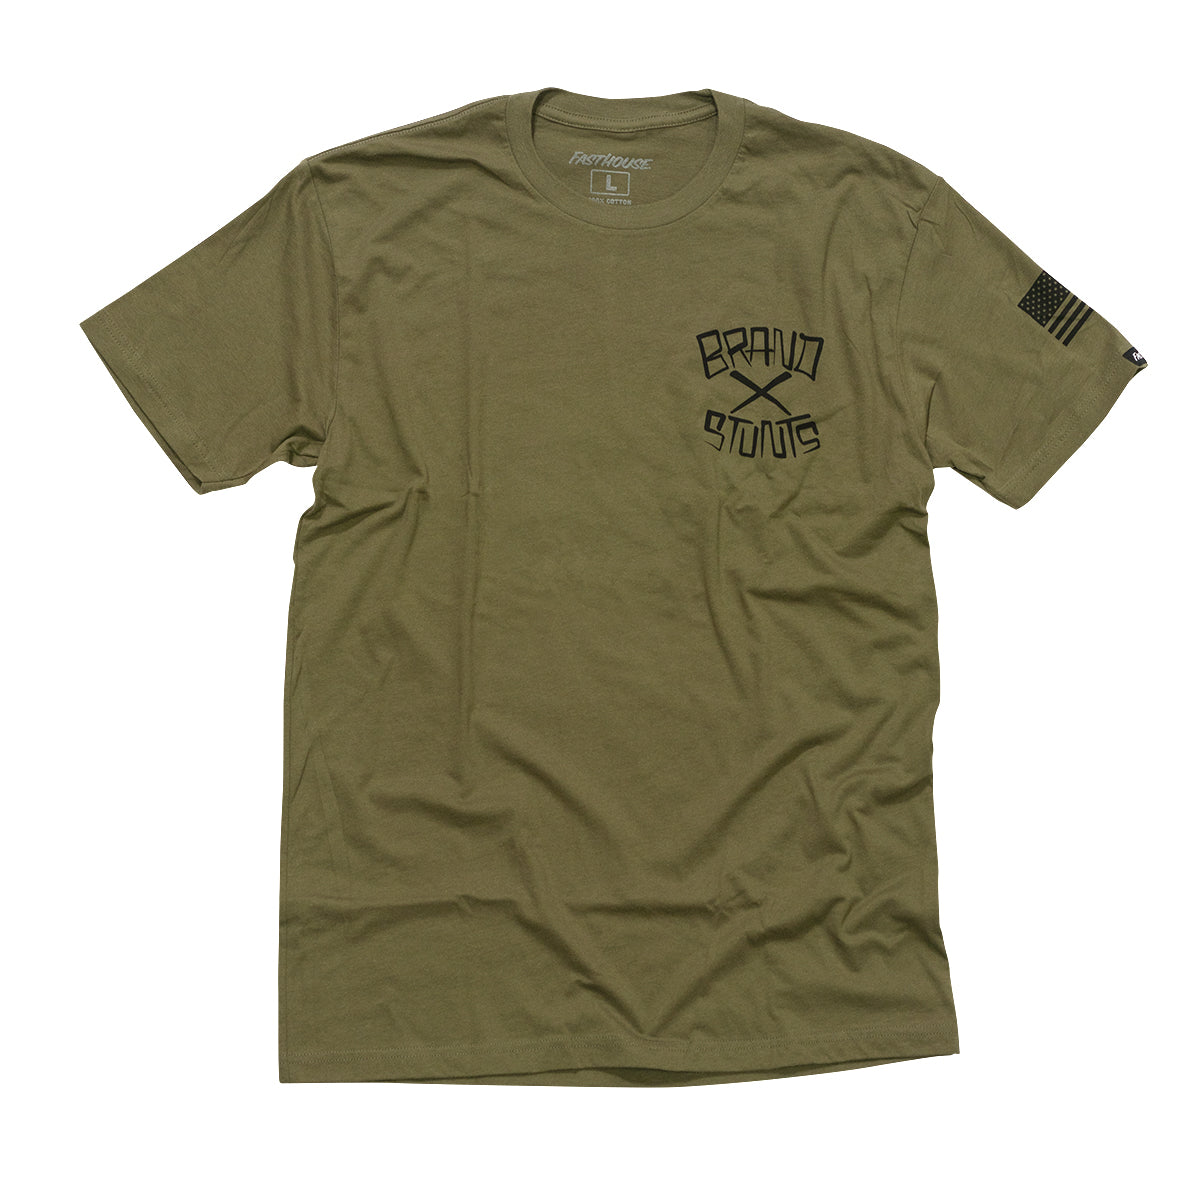 Fasthouse - Brand X Good to Go Tee - Military Green